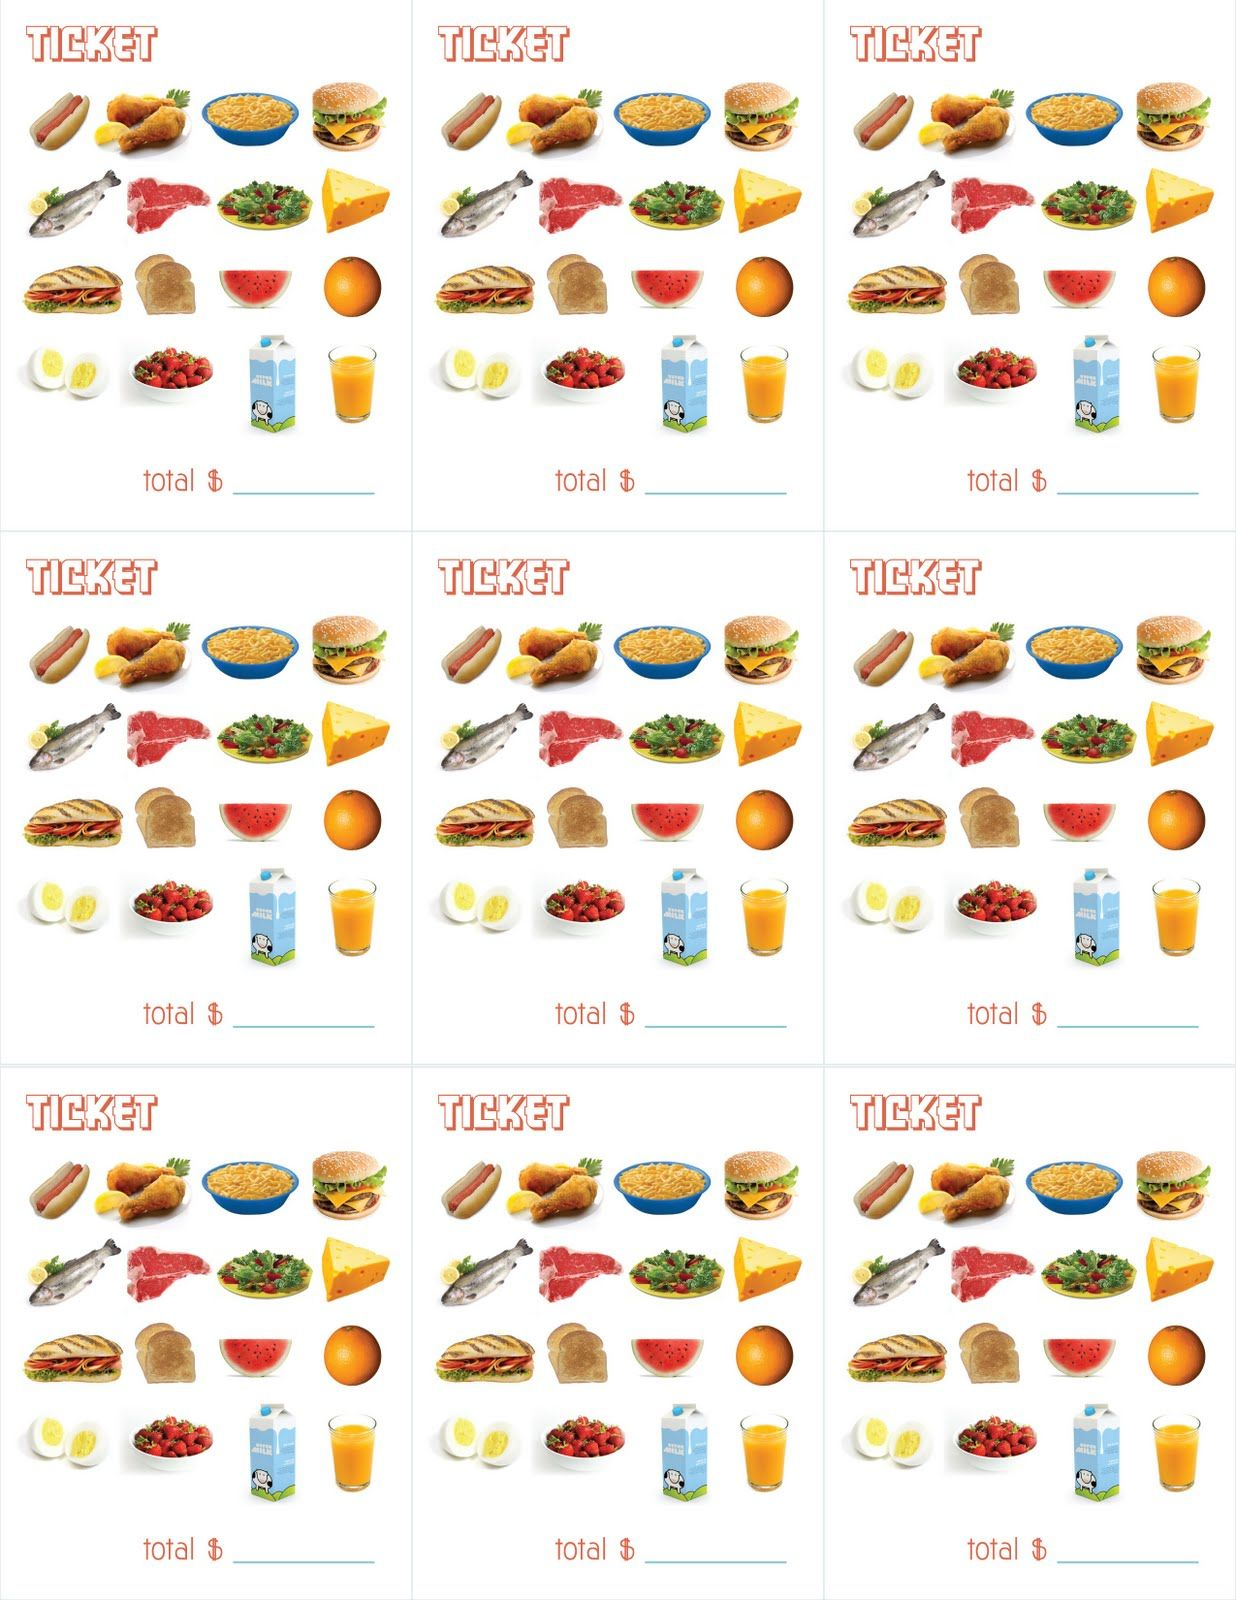 Delightful Distractions Printable Menus For Playing Restaurant